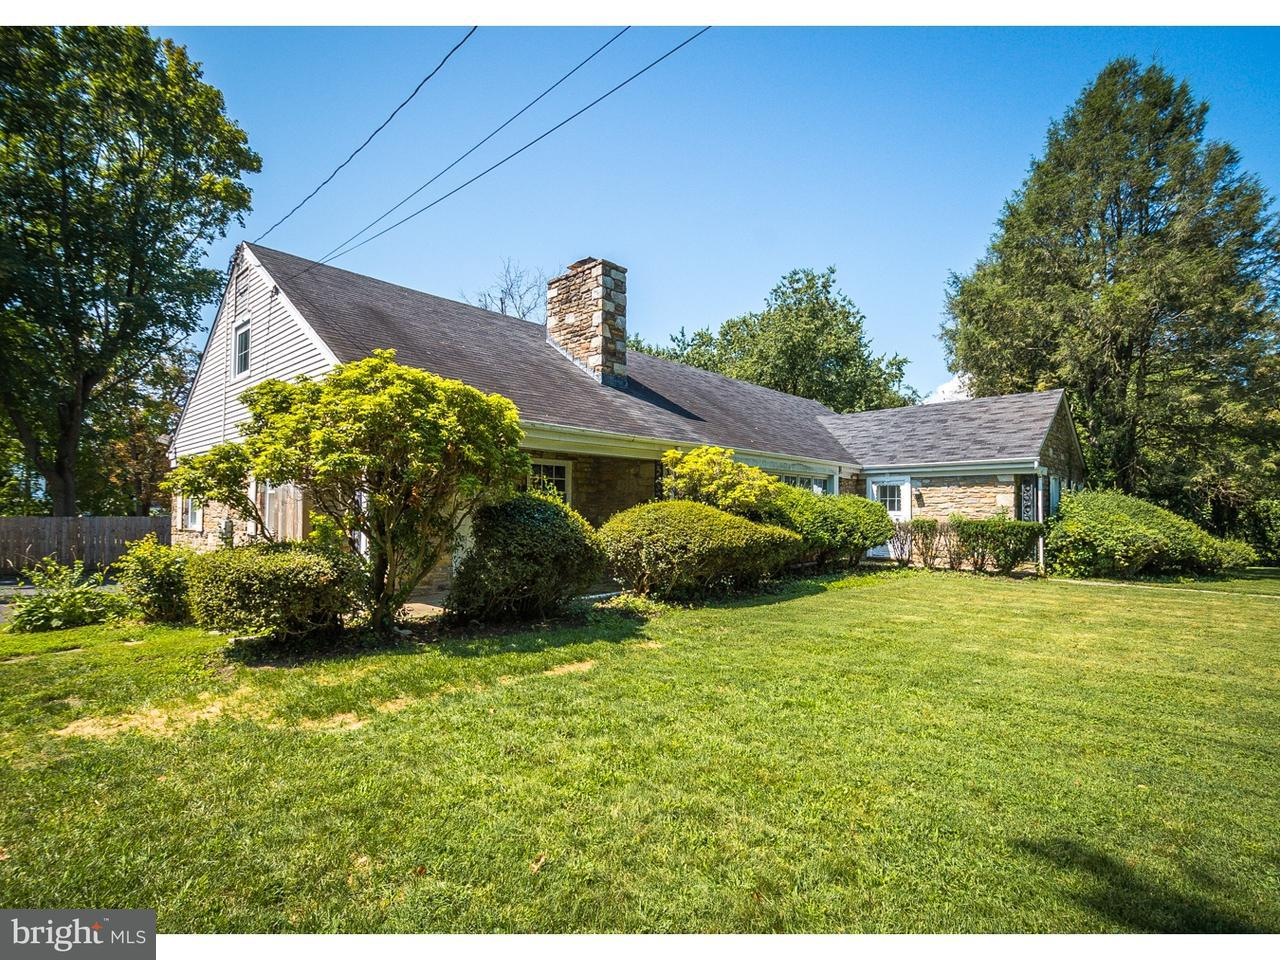 Single Family Home for Sale at 404 ELLIOT Road Cheltenham, Pennsylvania 19027 United States